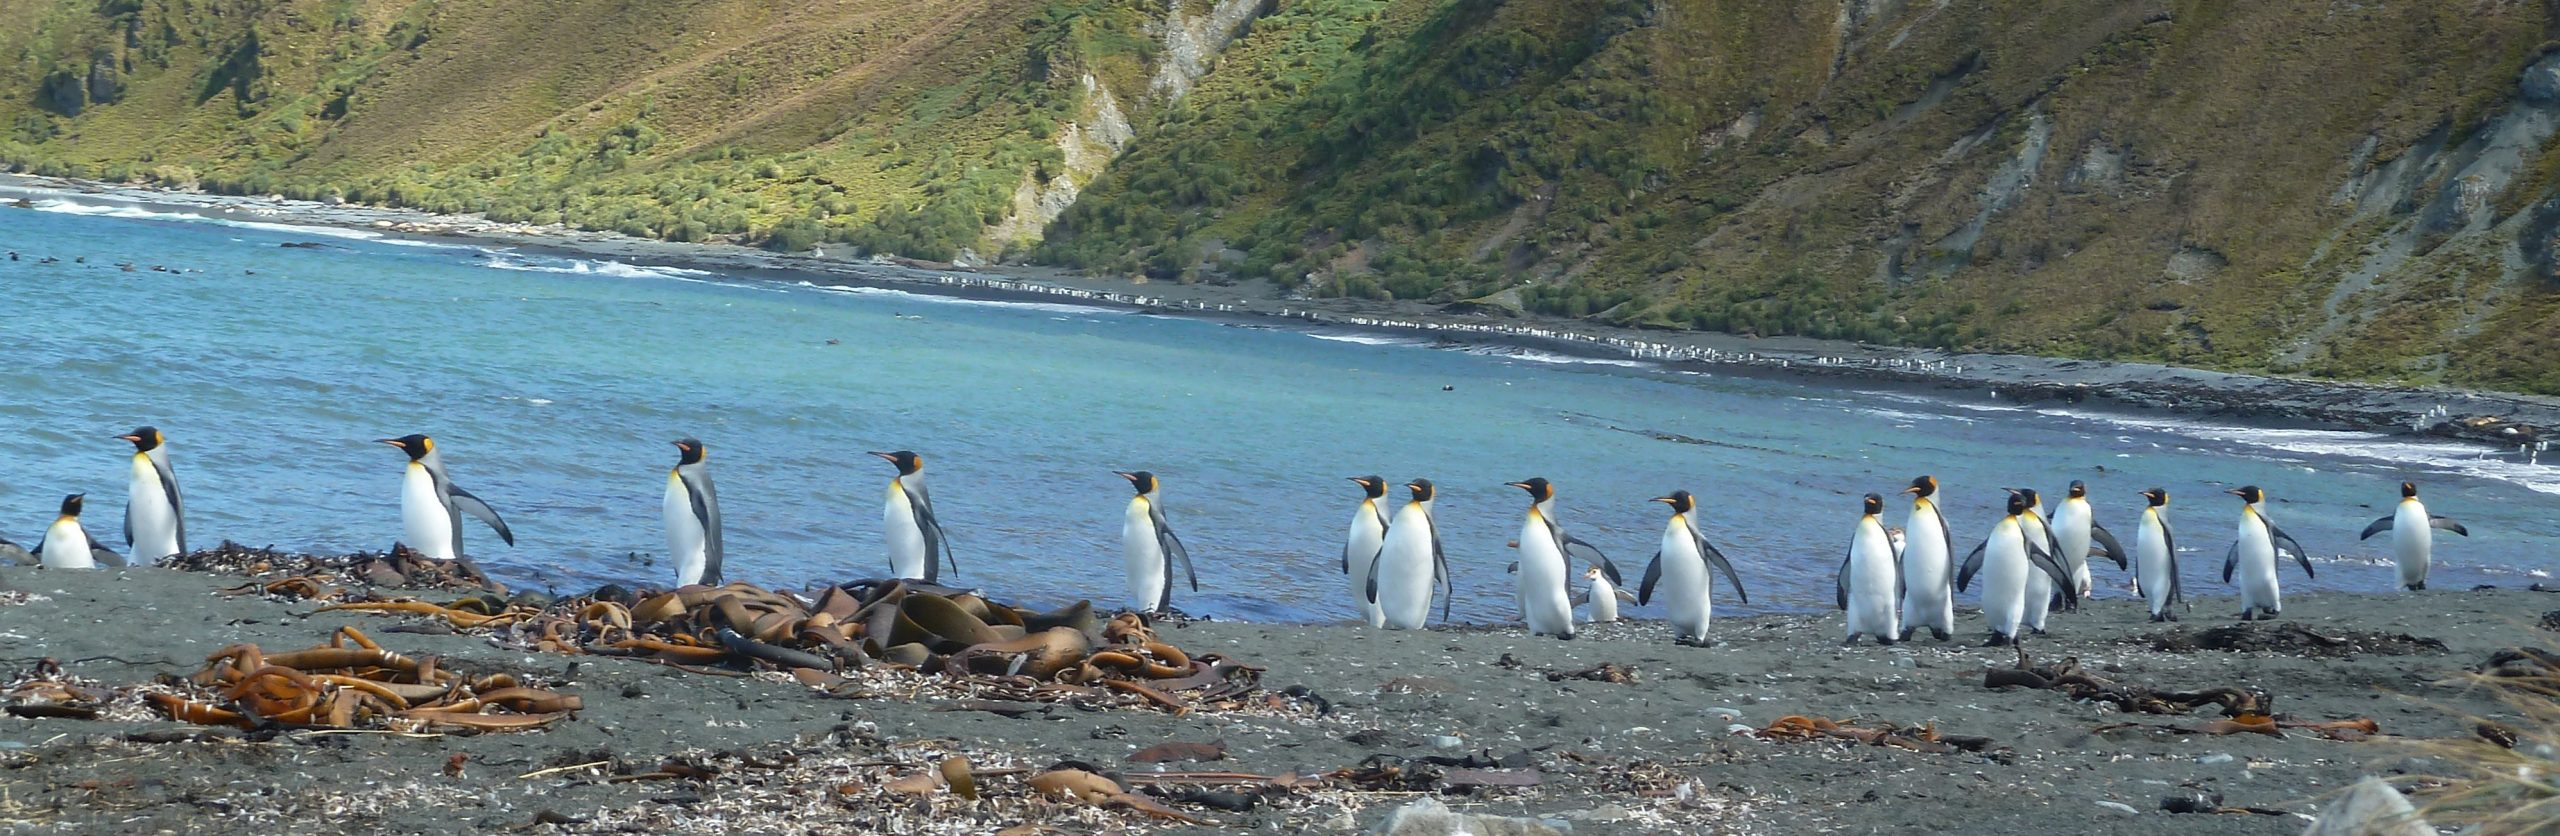 March of the Penguins, Macquarie Island